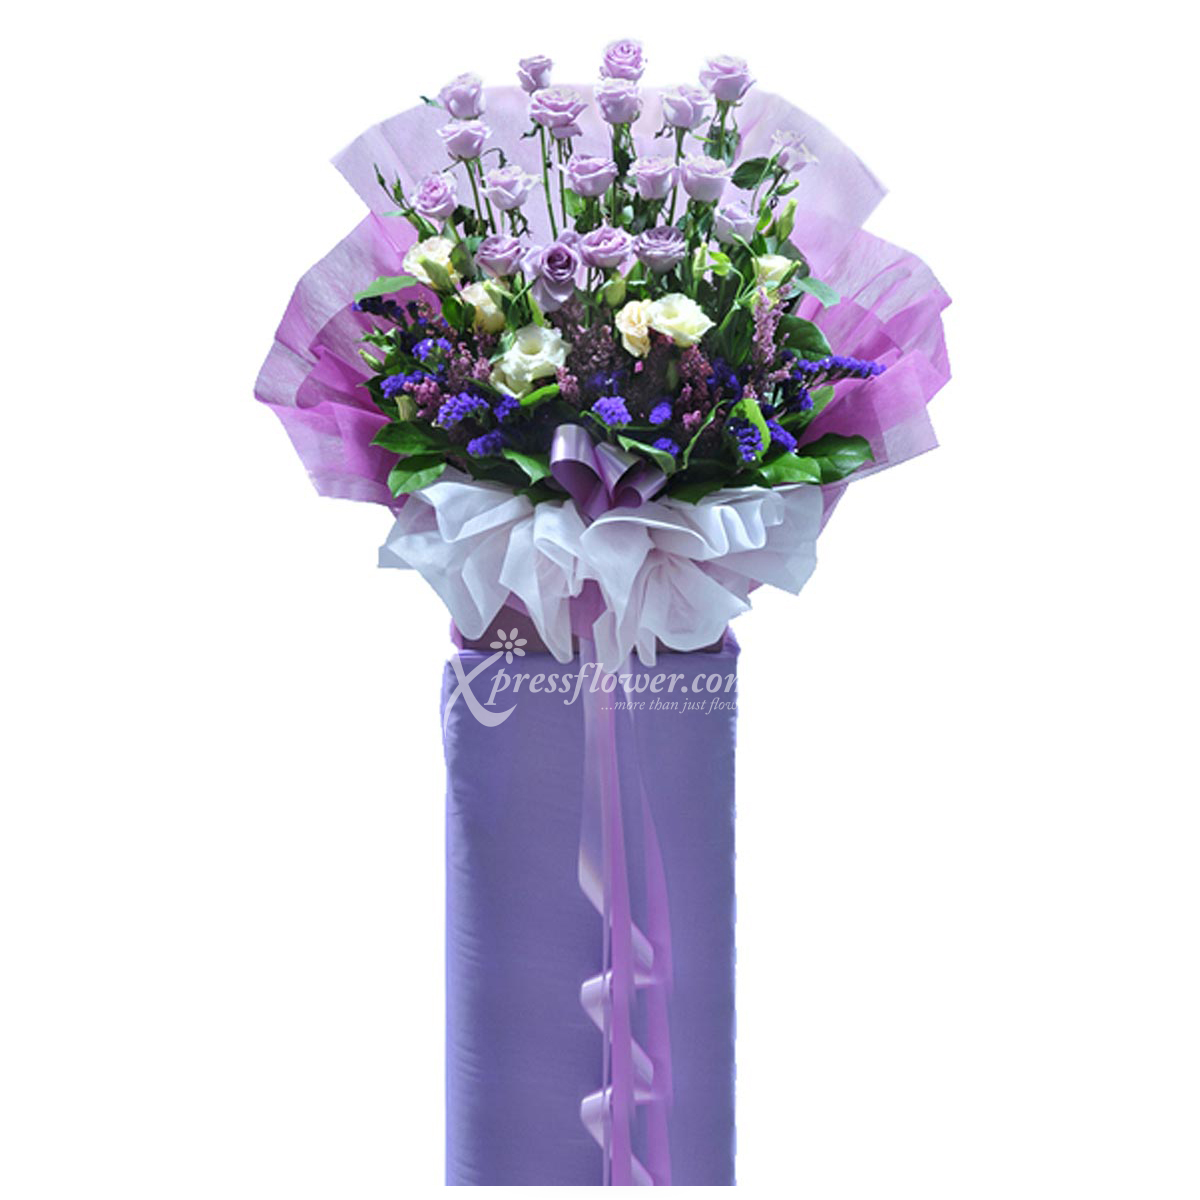 CS014 Spirit of Eminence congratulatory flower opening stand